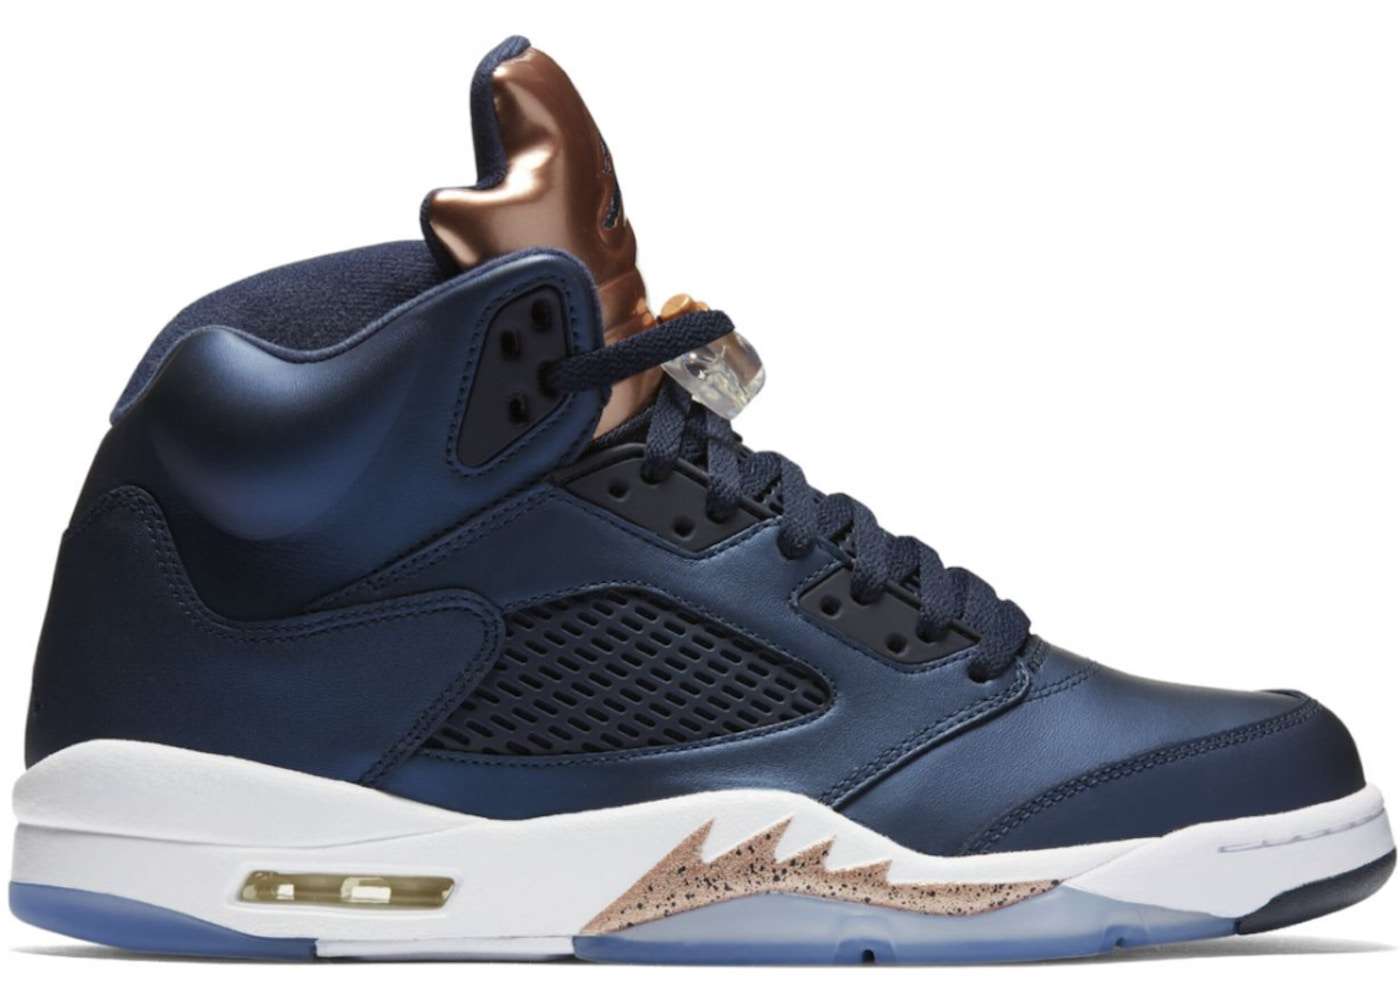 sports shoes b650d ee6af Jordan 5 Retro Bronze - 136027-416